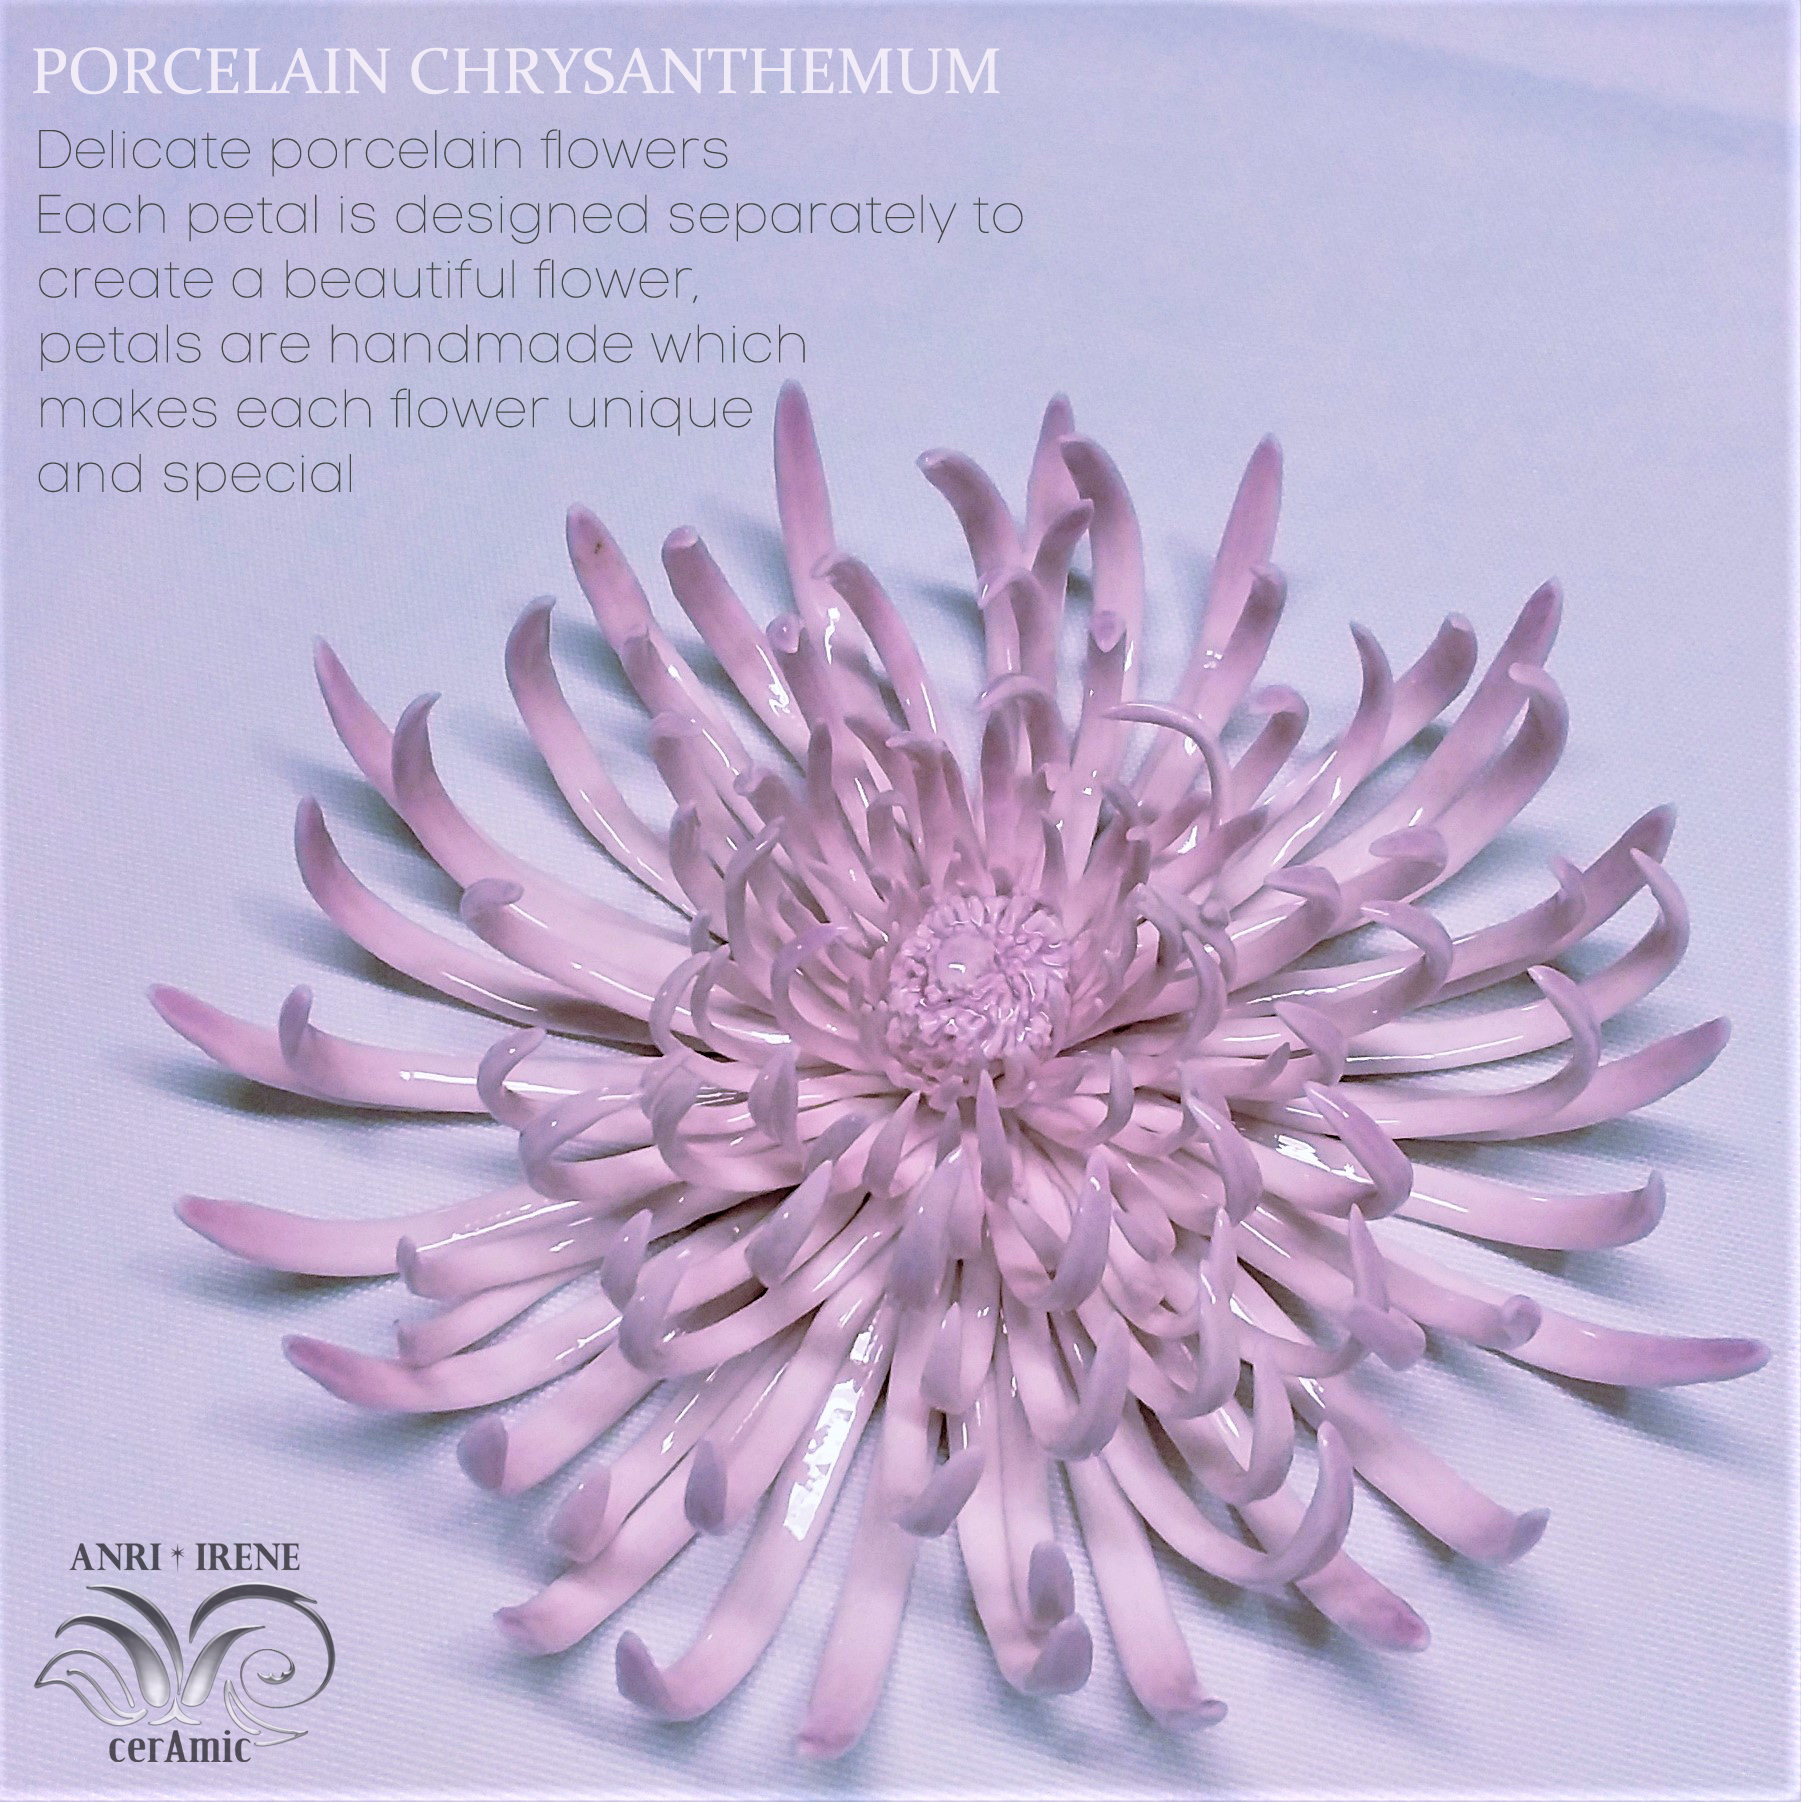 Porcelain chrysanthemum ceramic